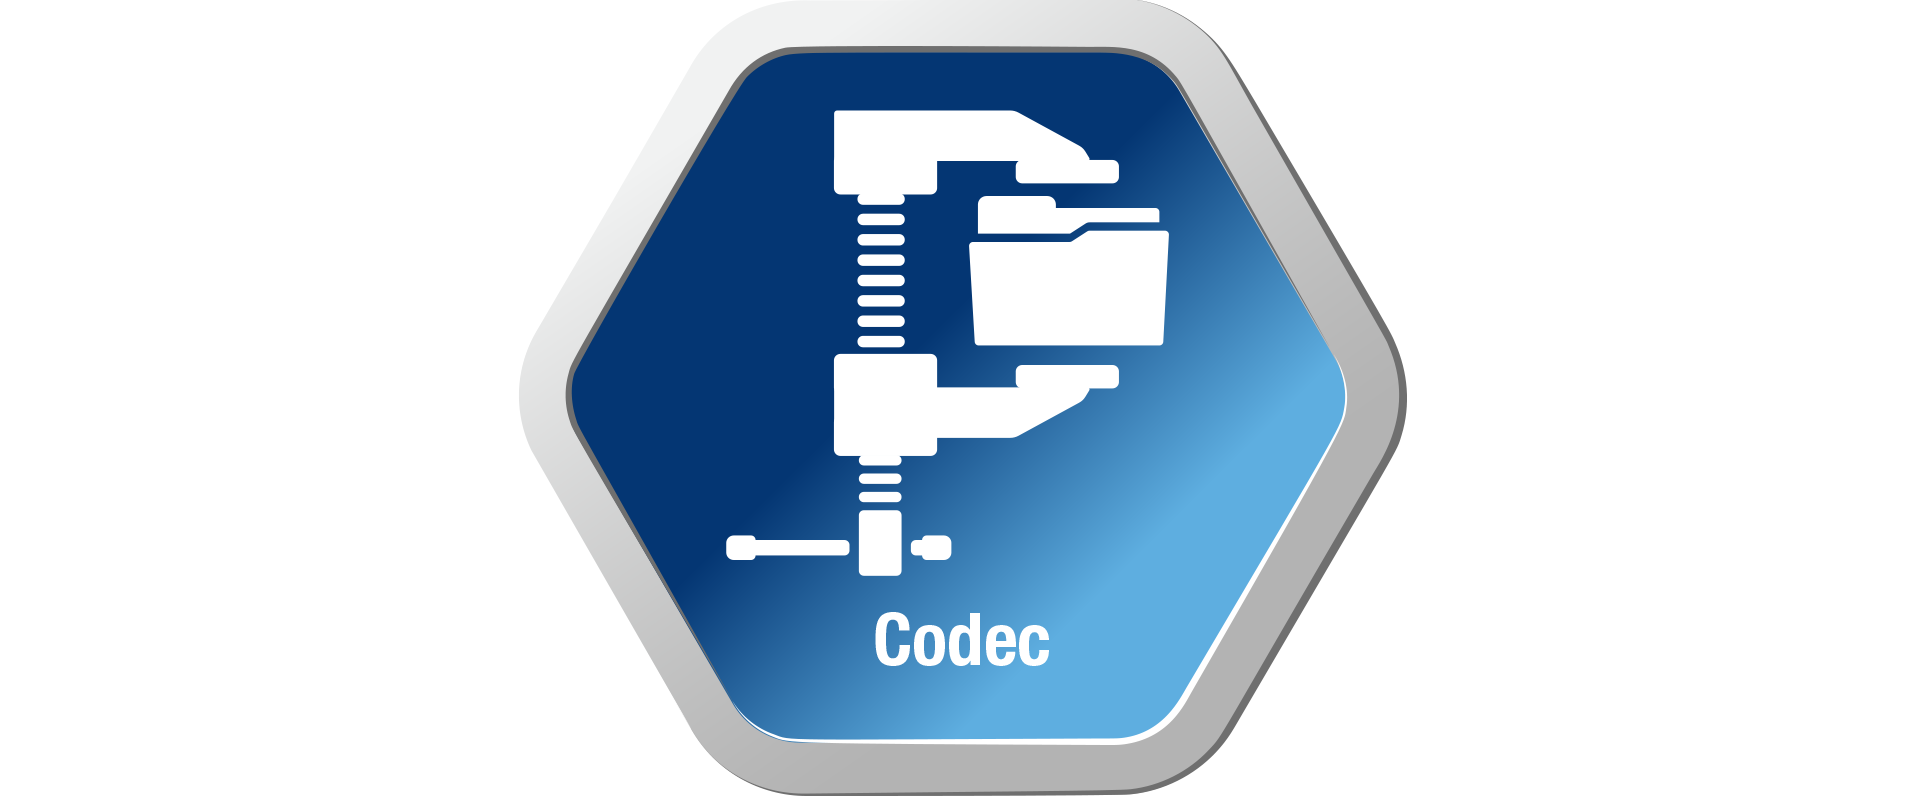 Extensive File Formats and Codecs